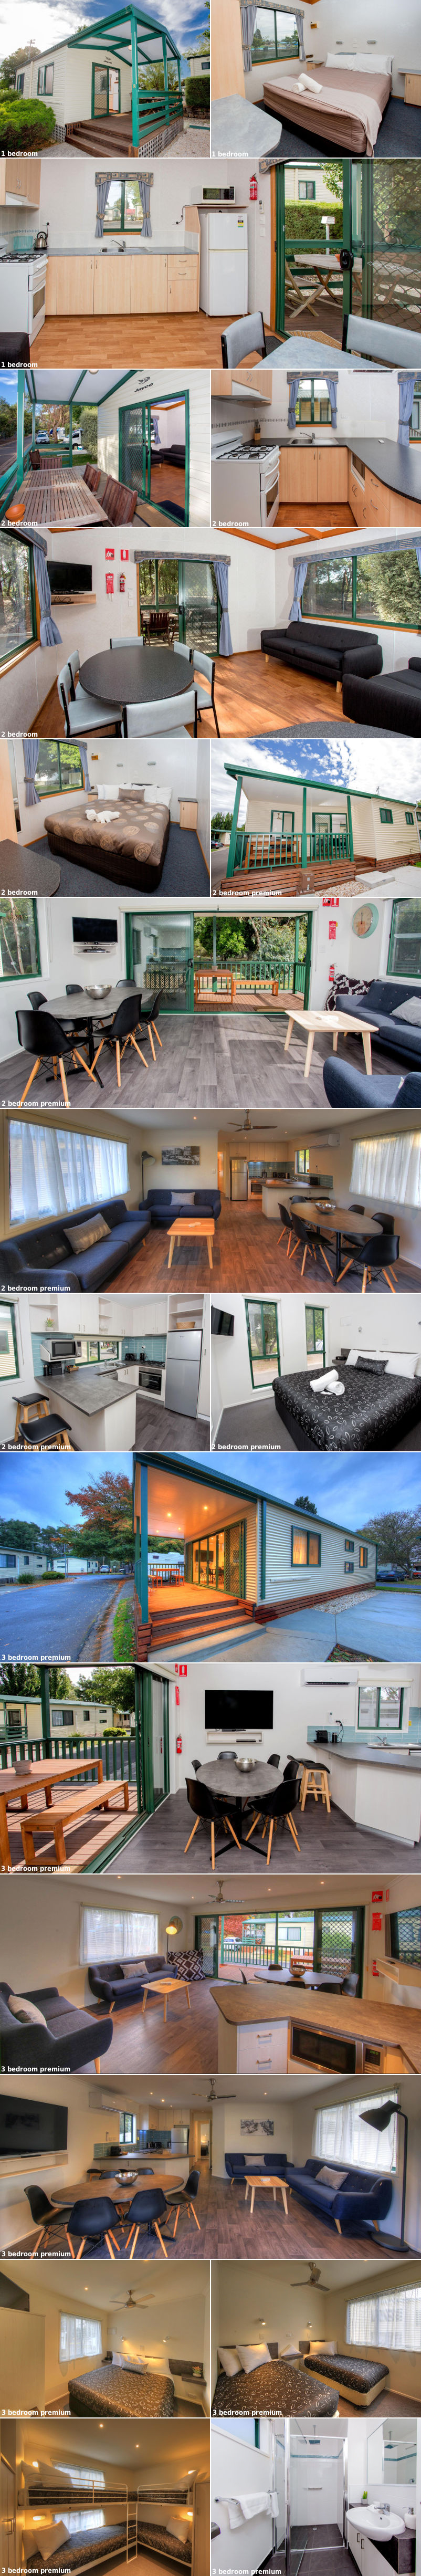 Eureka Stockade Holiday Park - Villas